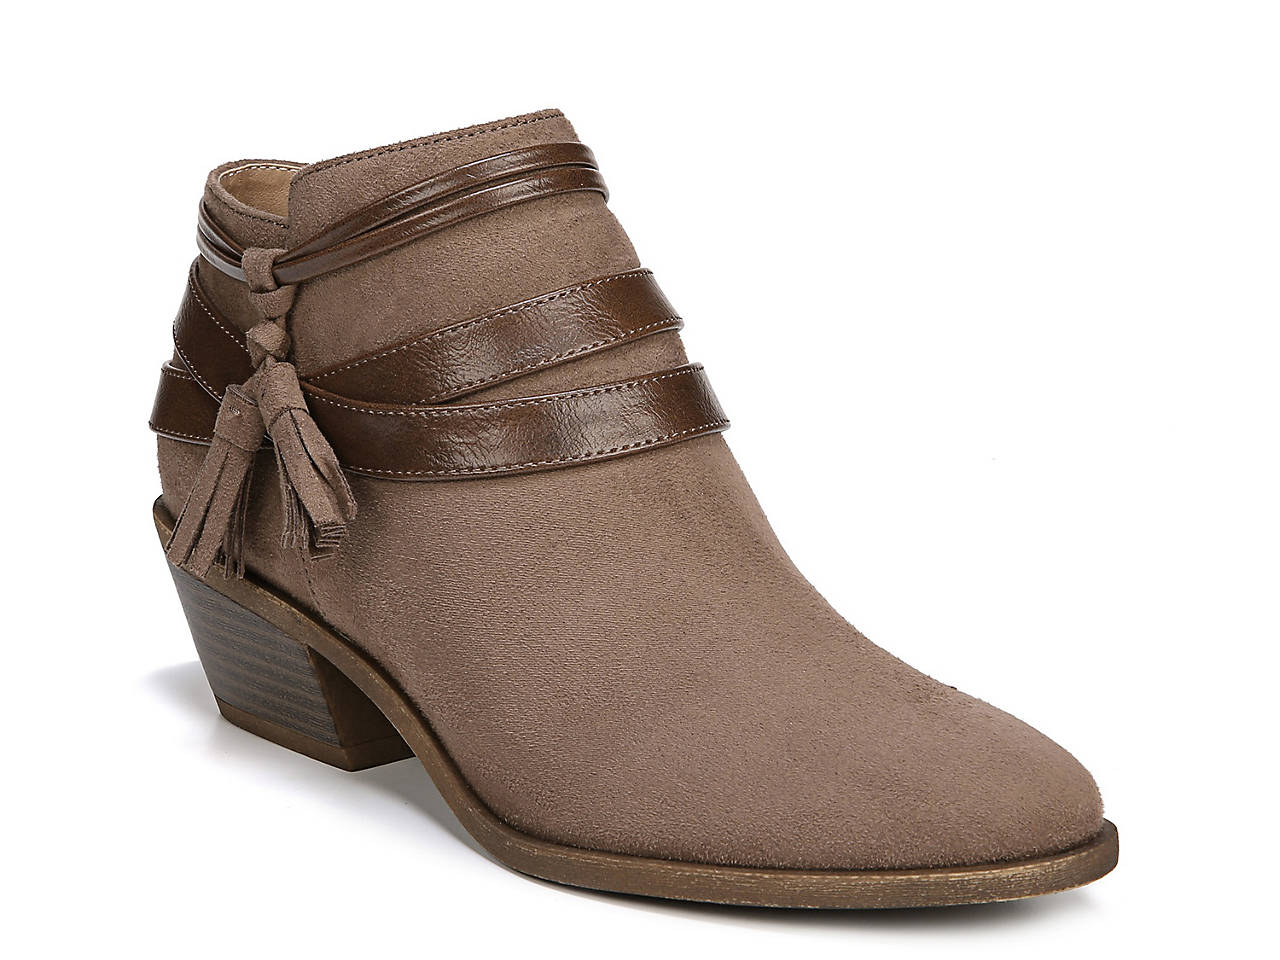 61841689ee61 LifeStride Paloma Bootie Women s Shoes